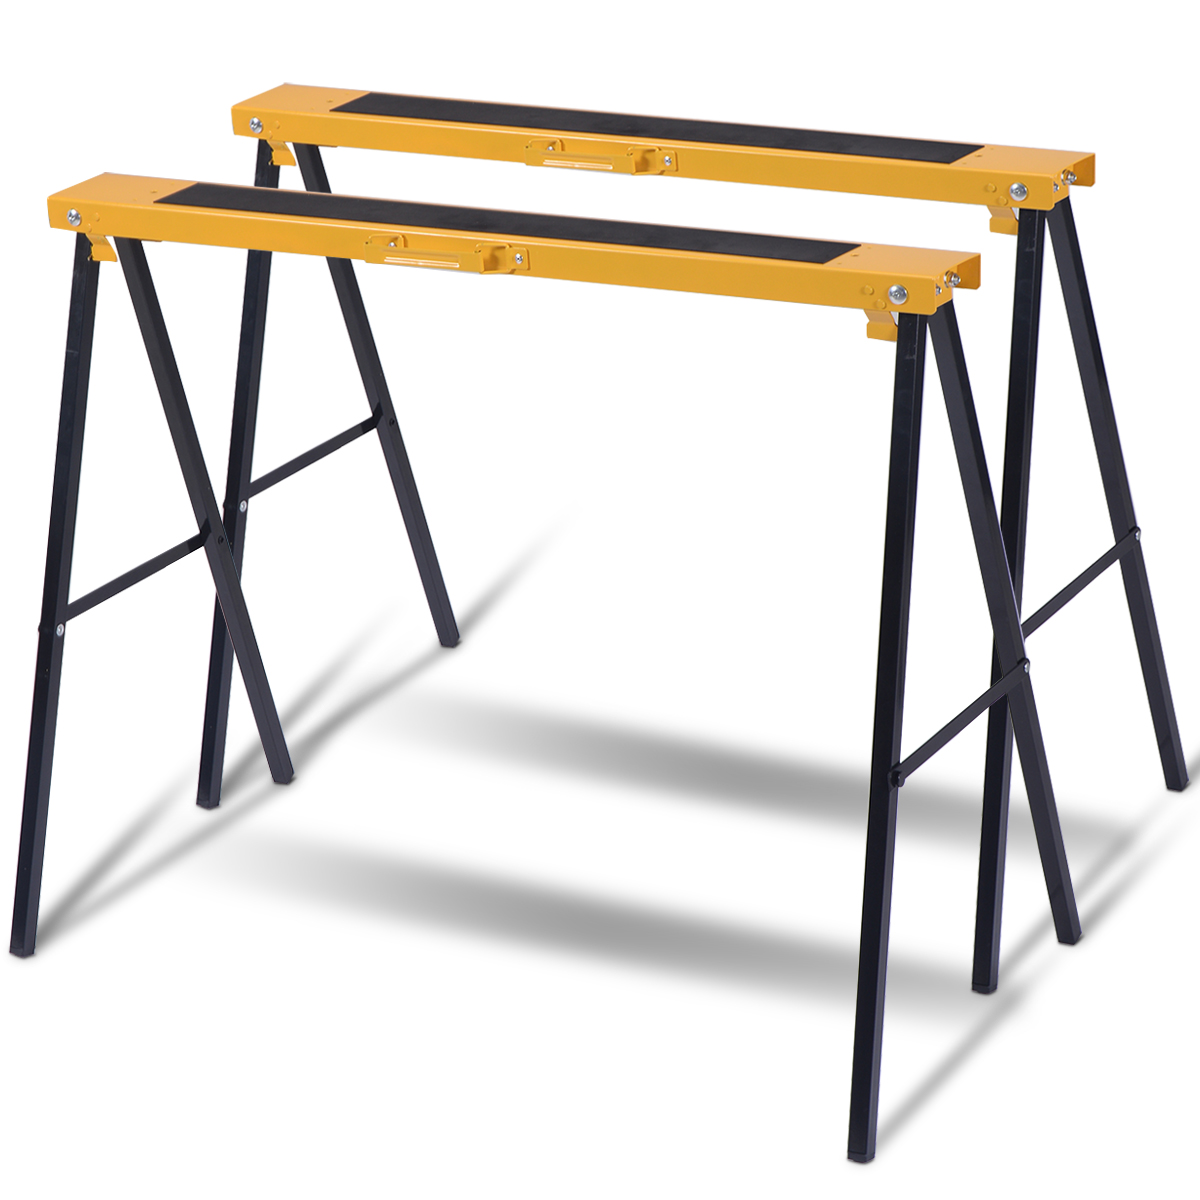 Pair of 2 Pack Heavy Duty Saw Horse Steel Folding Legs Sawhorse by